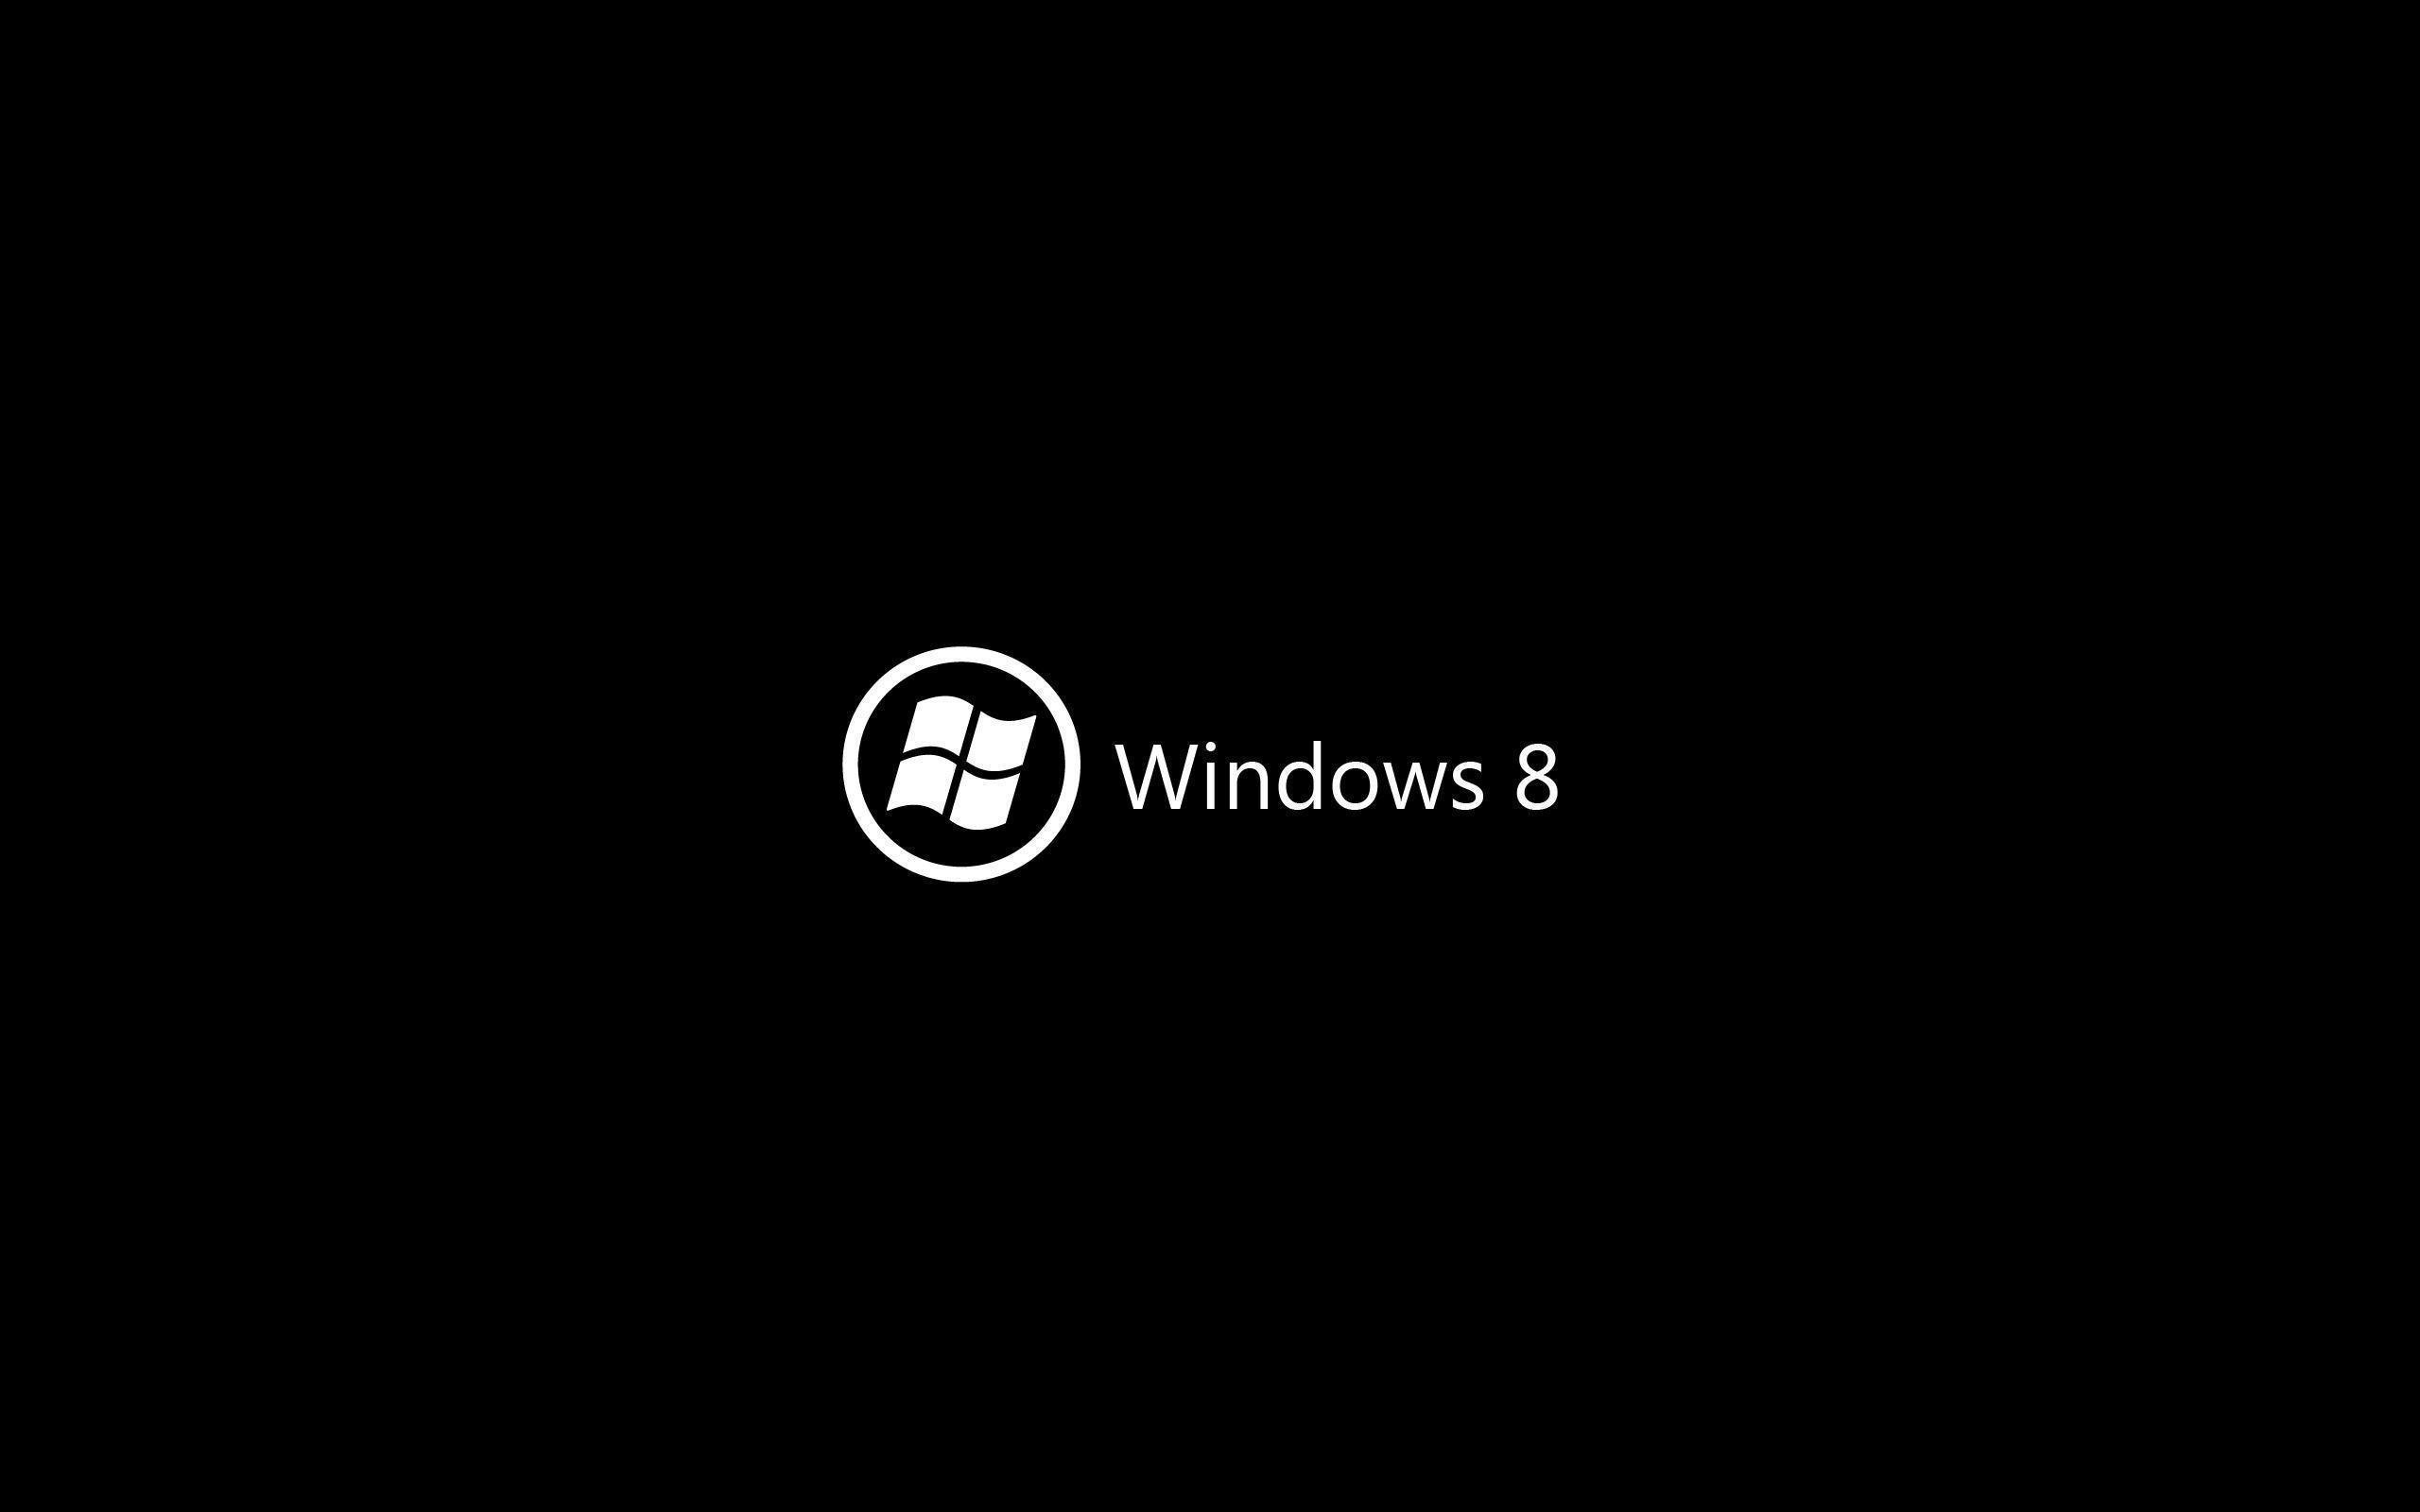 Windows 8 Logo Wallpapers For PC Backgrounds 1 HD Wallpapers